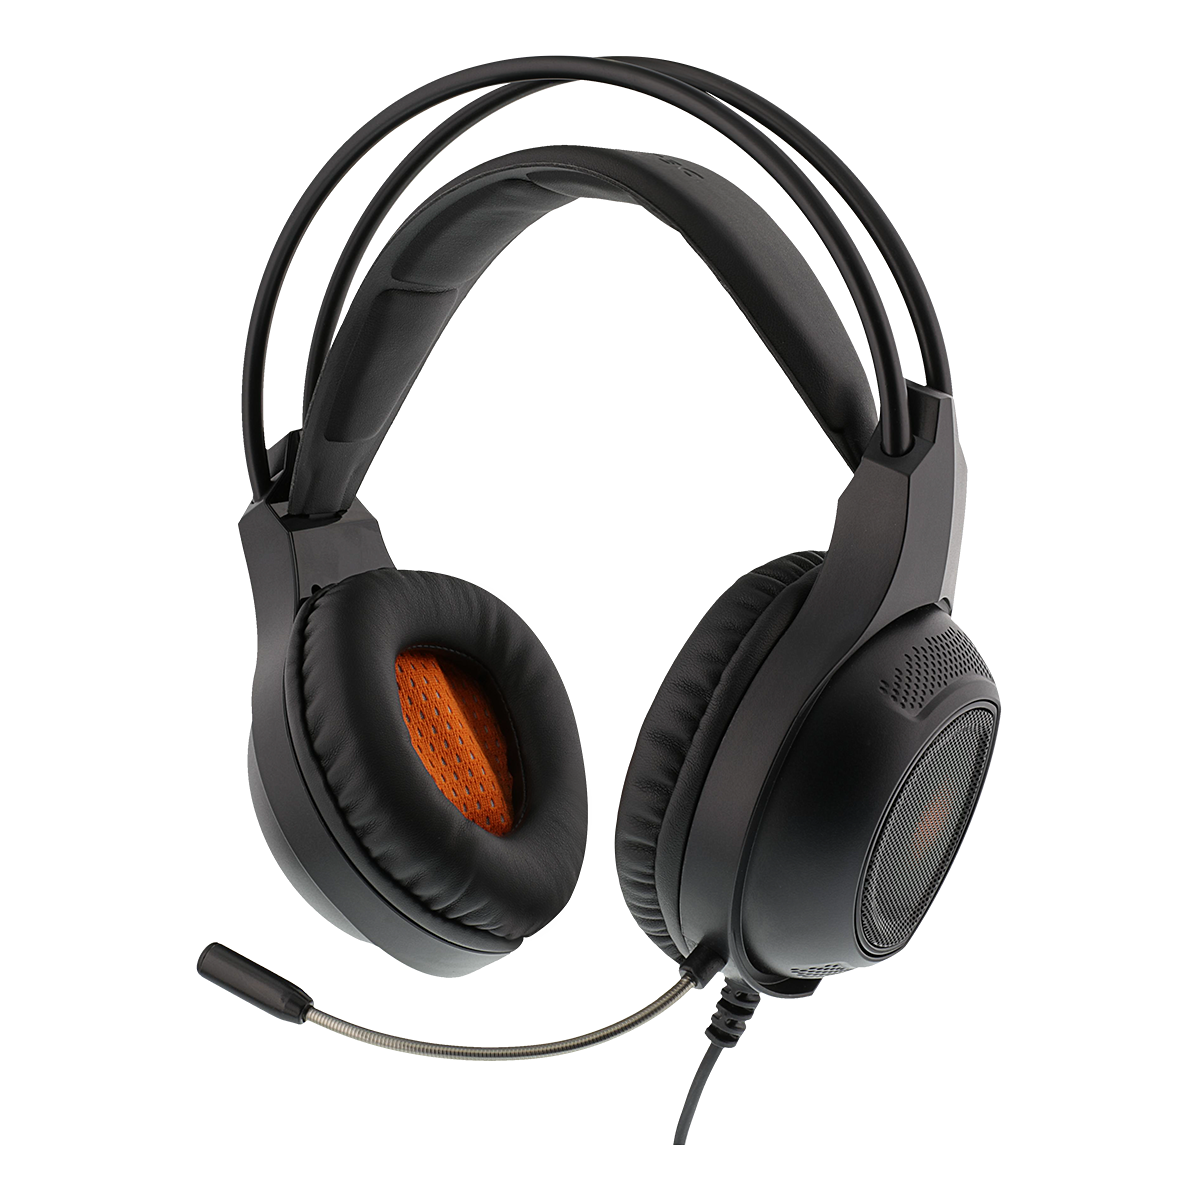 DELTACO GAMING Stereo headset, 2 x 3.5 mm, LED, 2 m cable, black